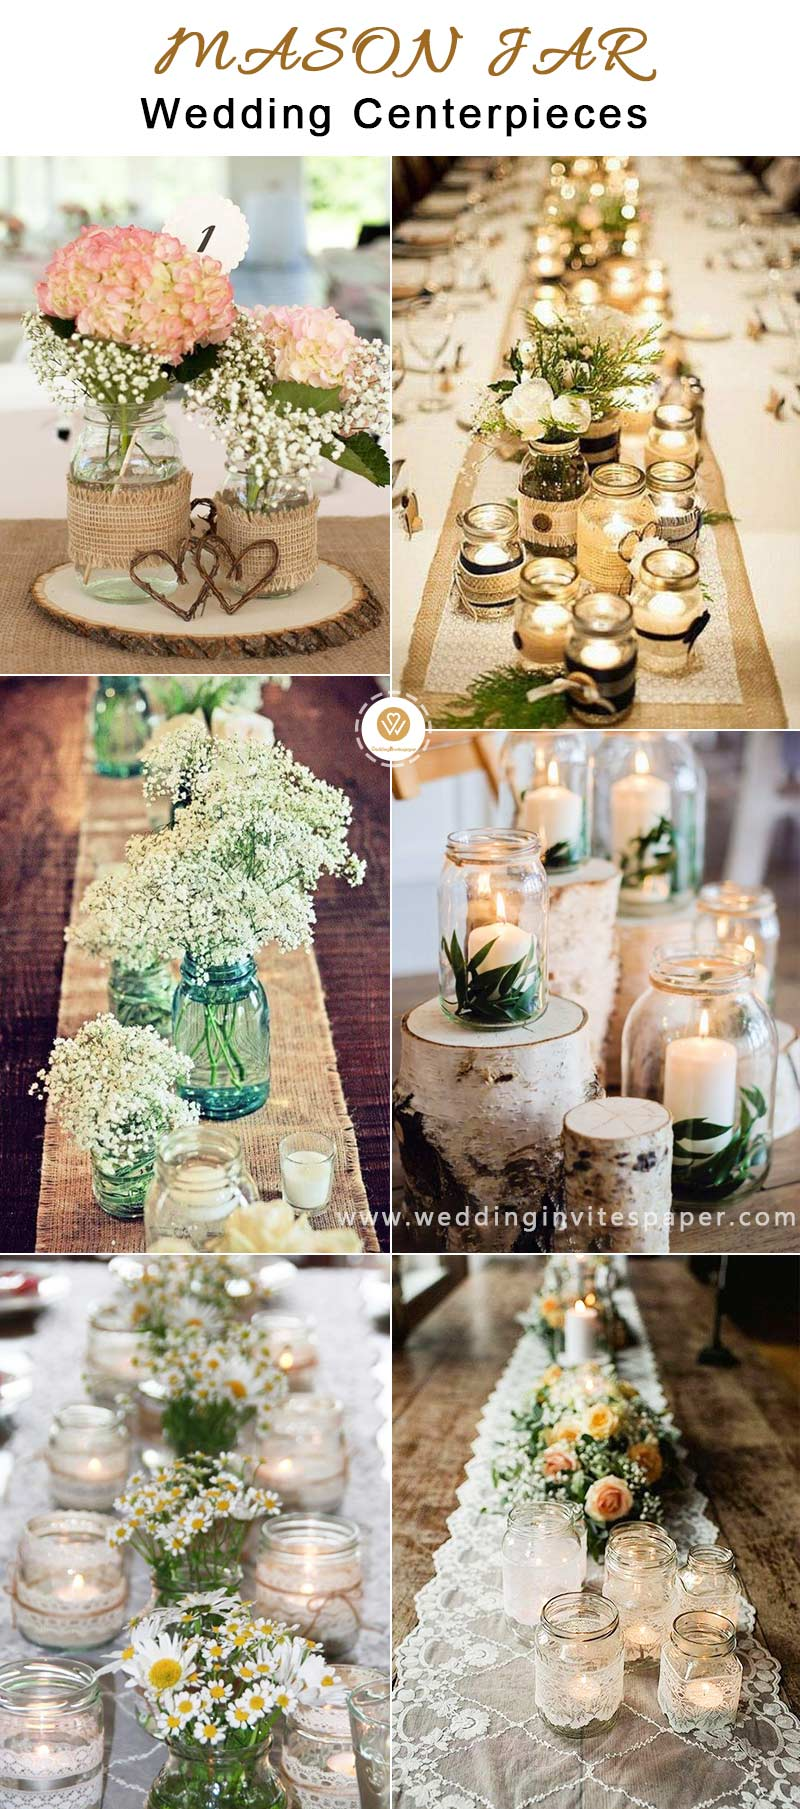 MASON-JAR-Wedding-Centerpieces.jpg